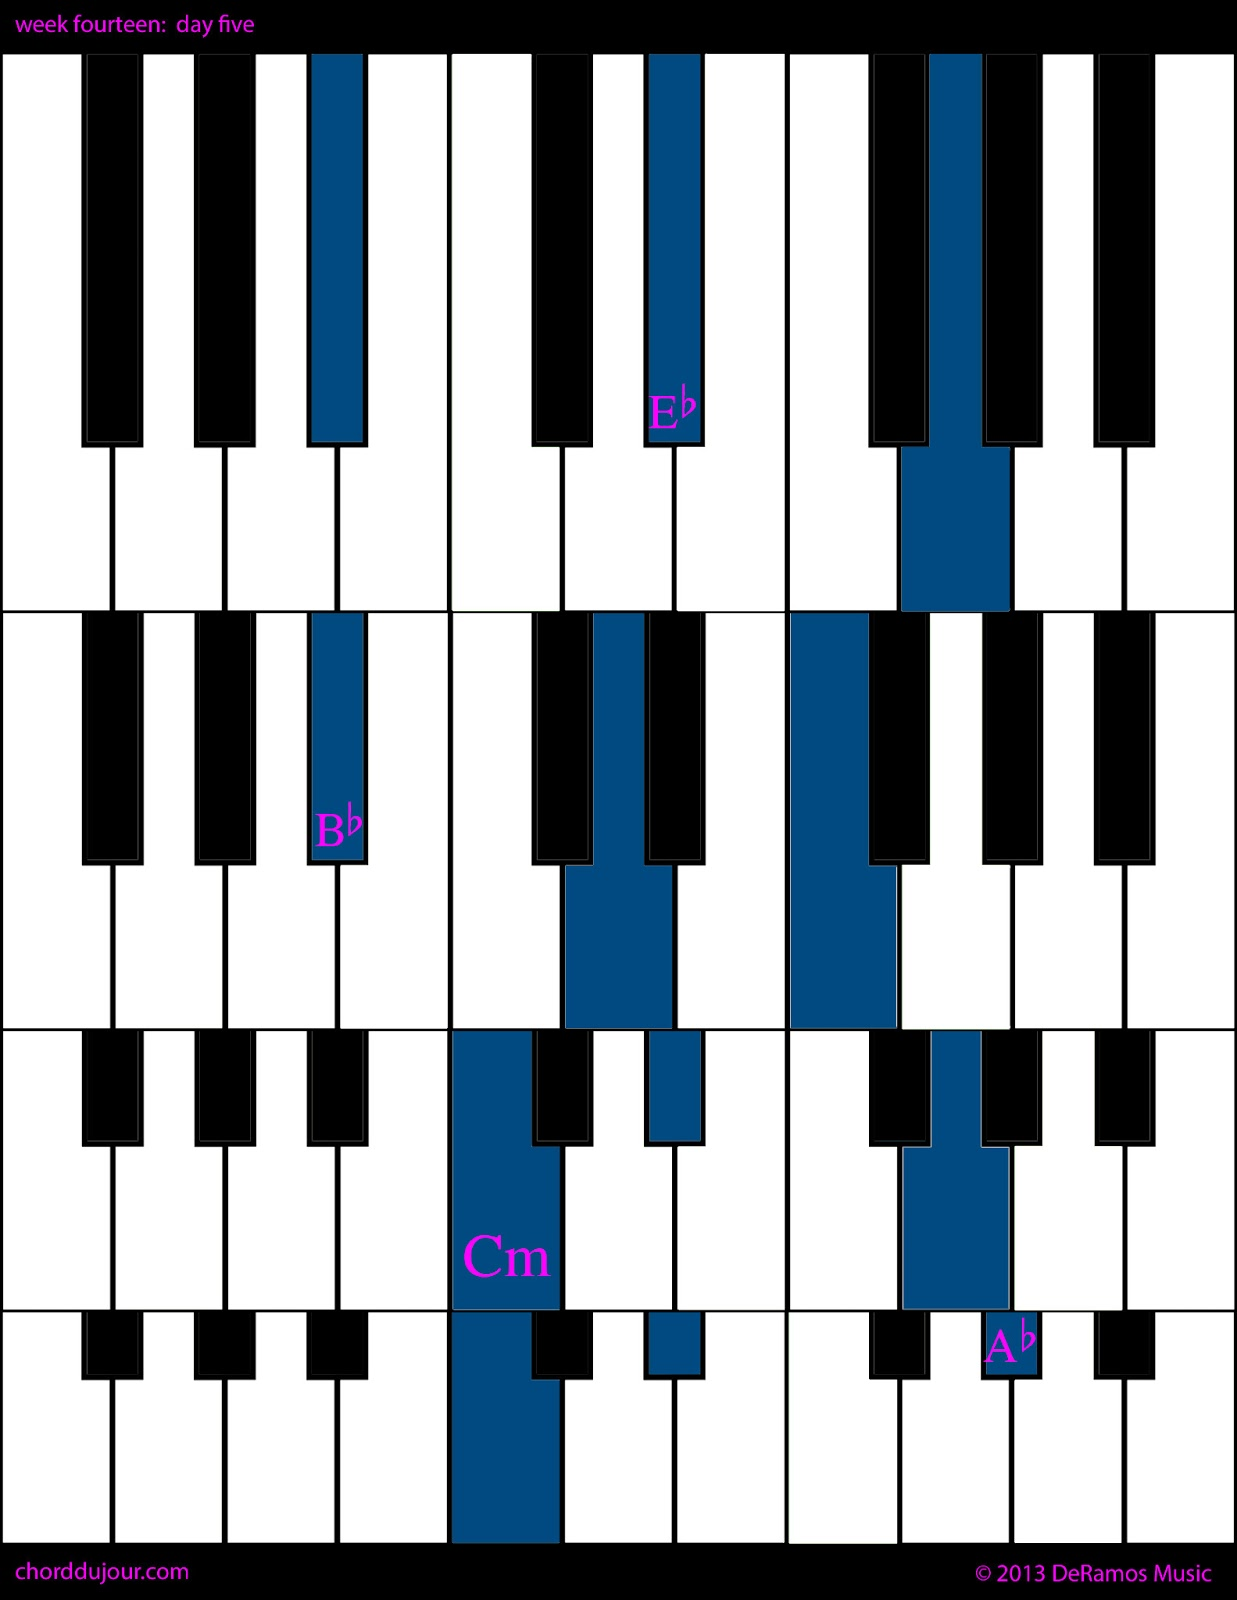 Chord du jour march 2013 four chords three more chords c minor pentatonic scale for keyboard next weeks facebook preview hexwebz Gallery